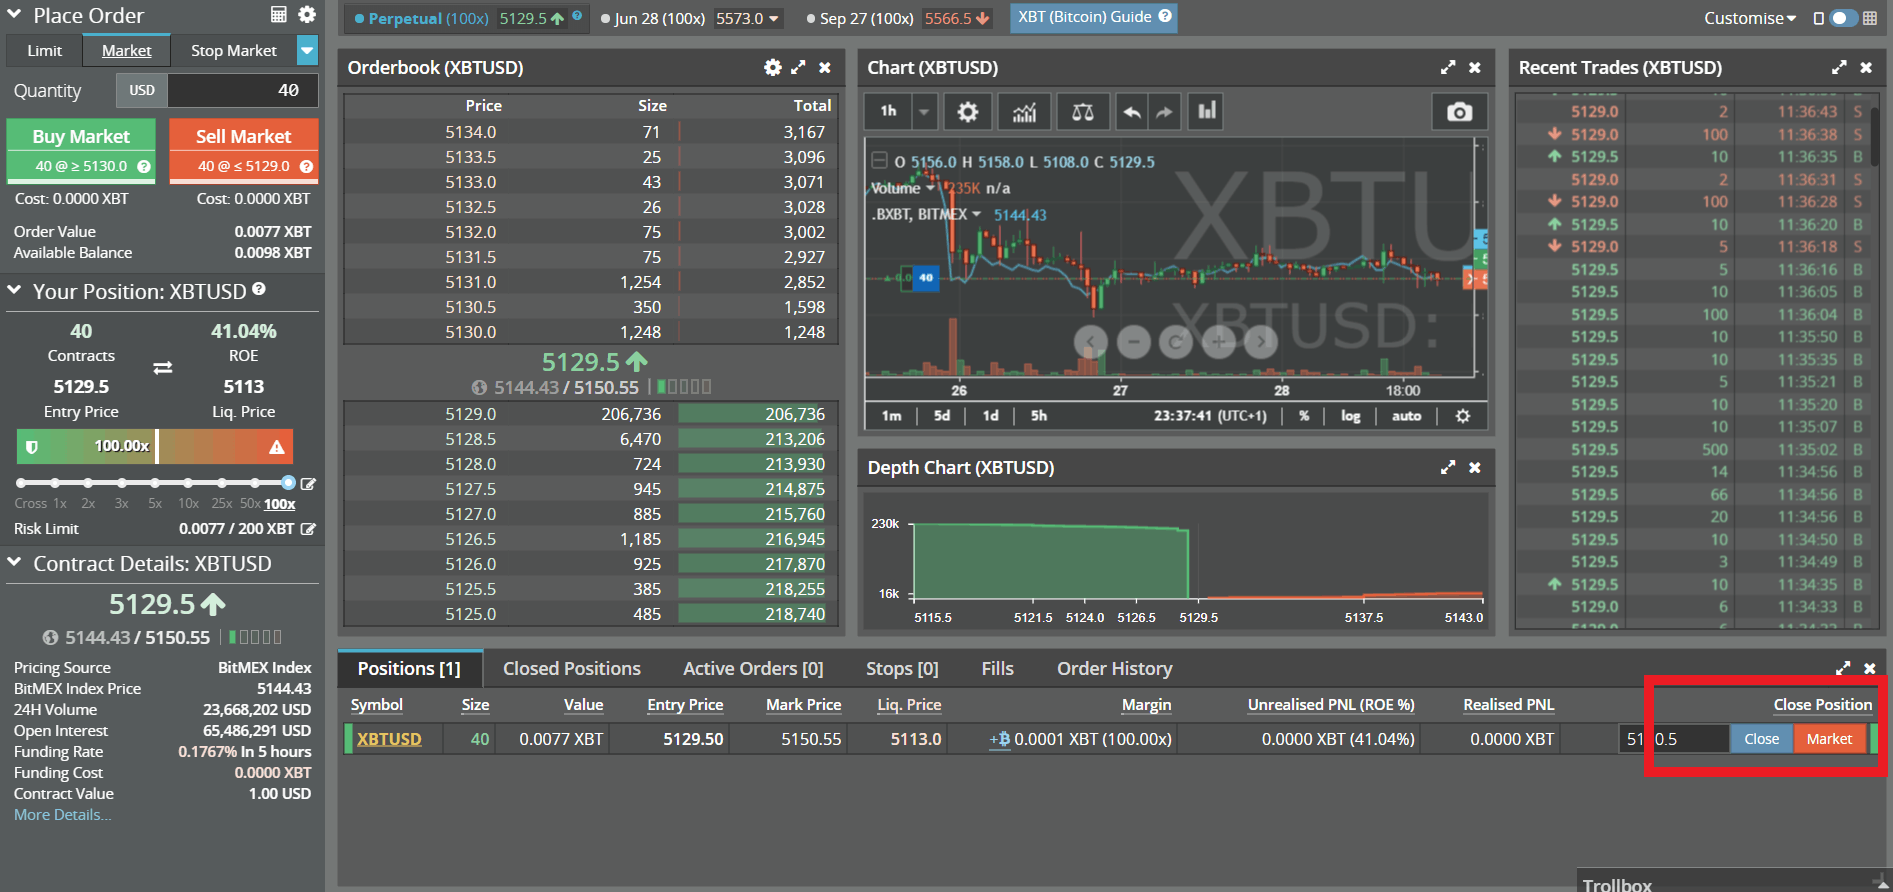 How to Close a Position on BitMEX